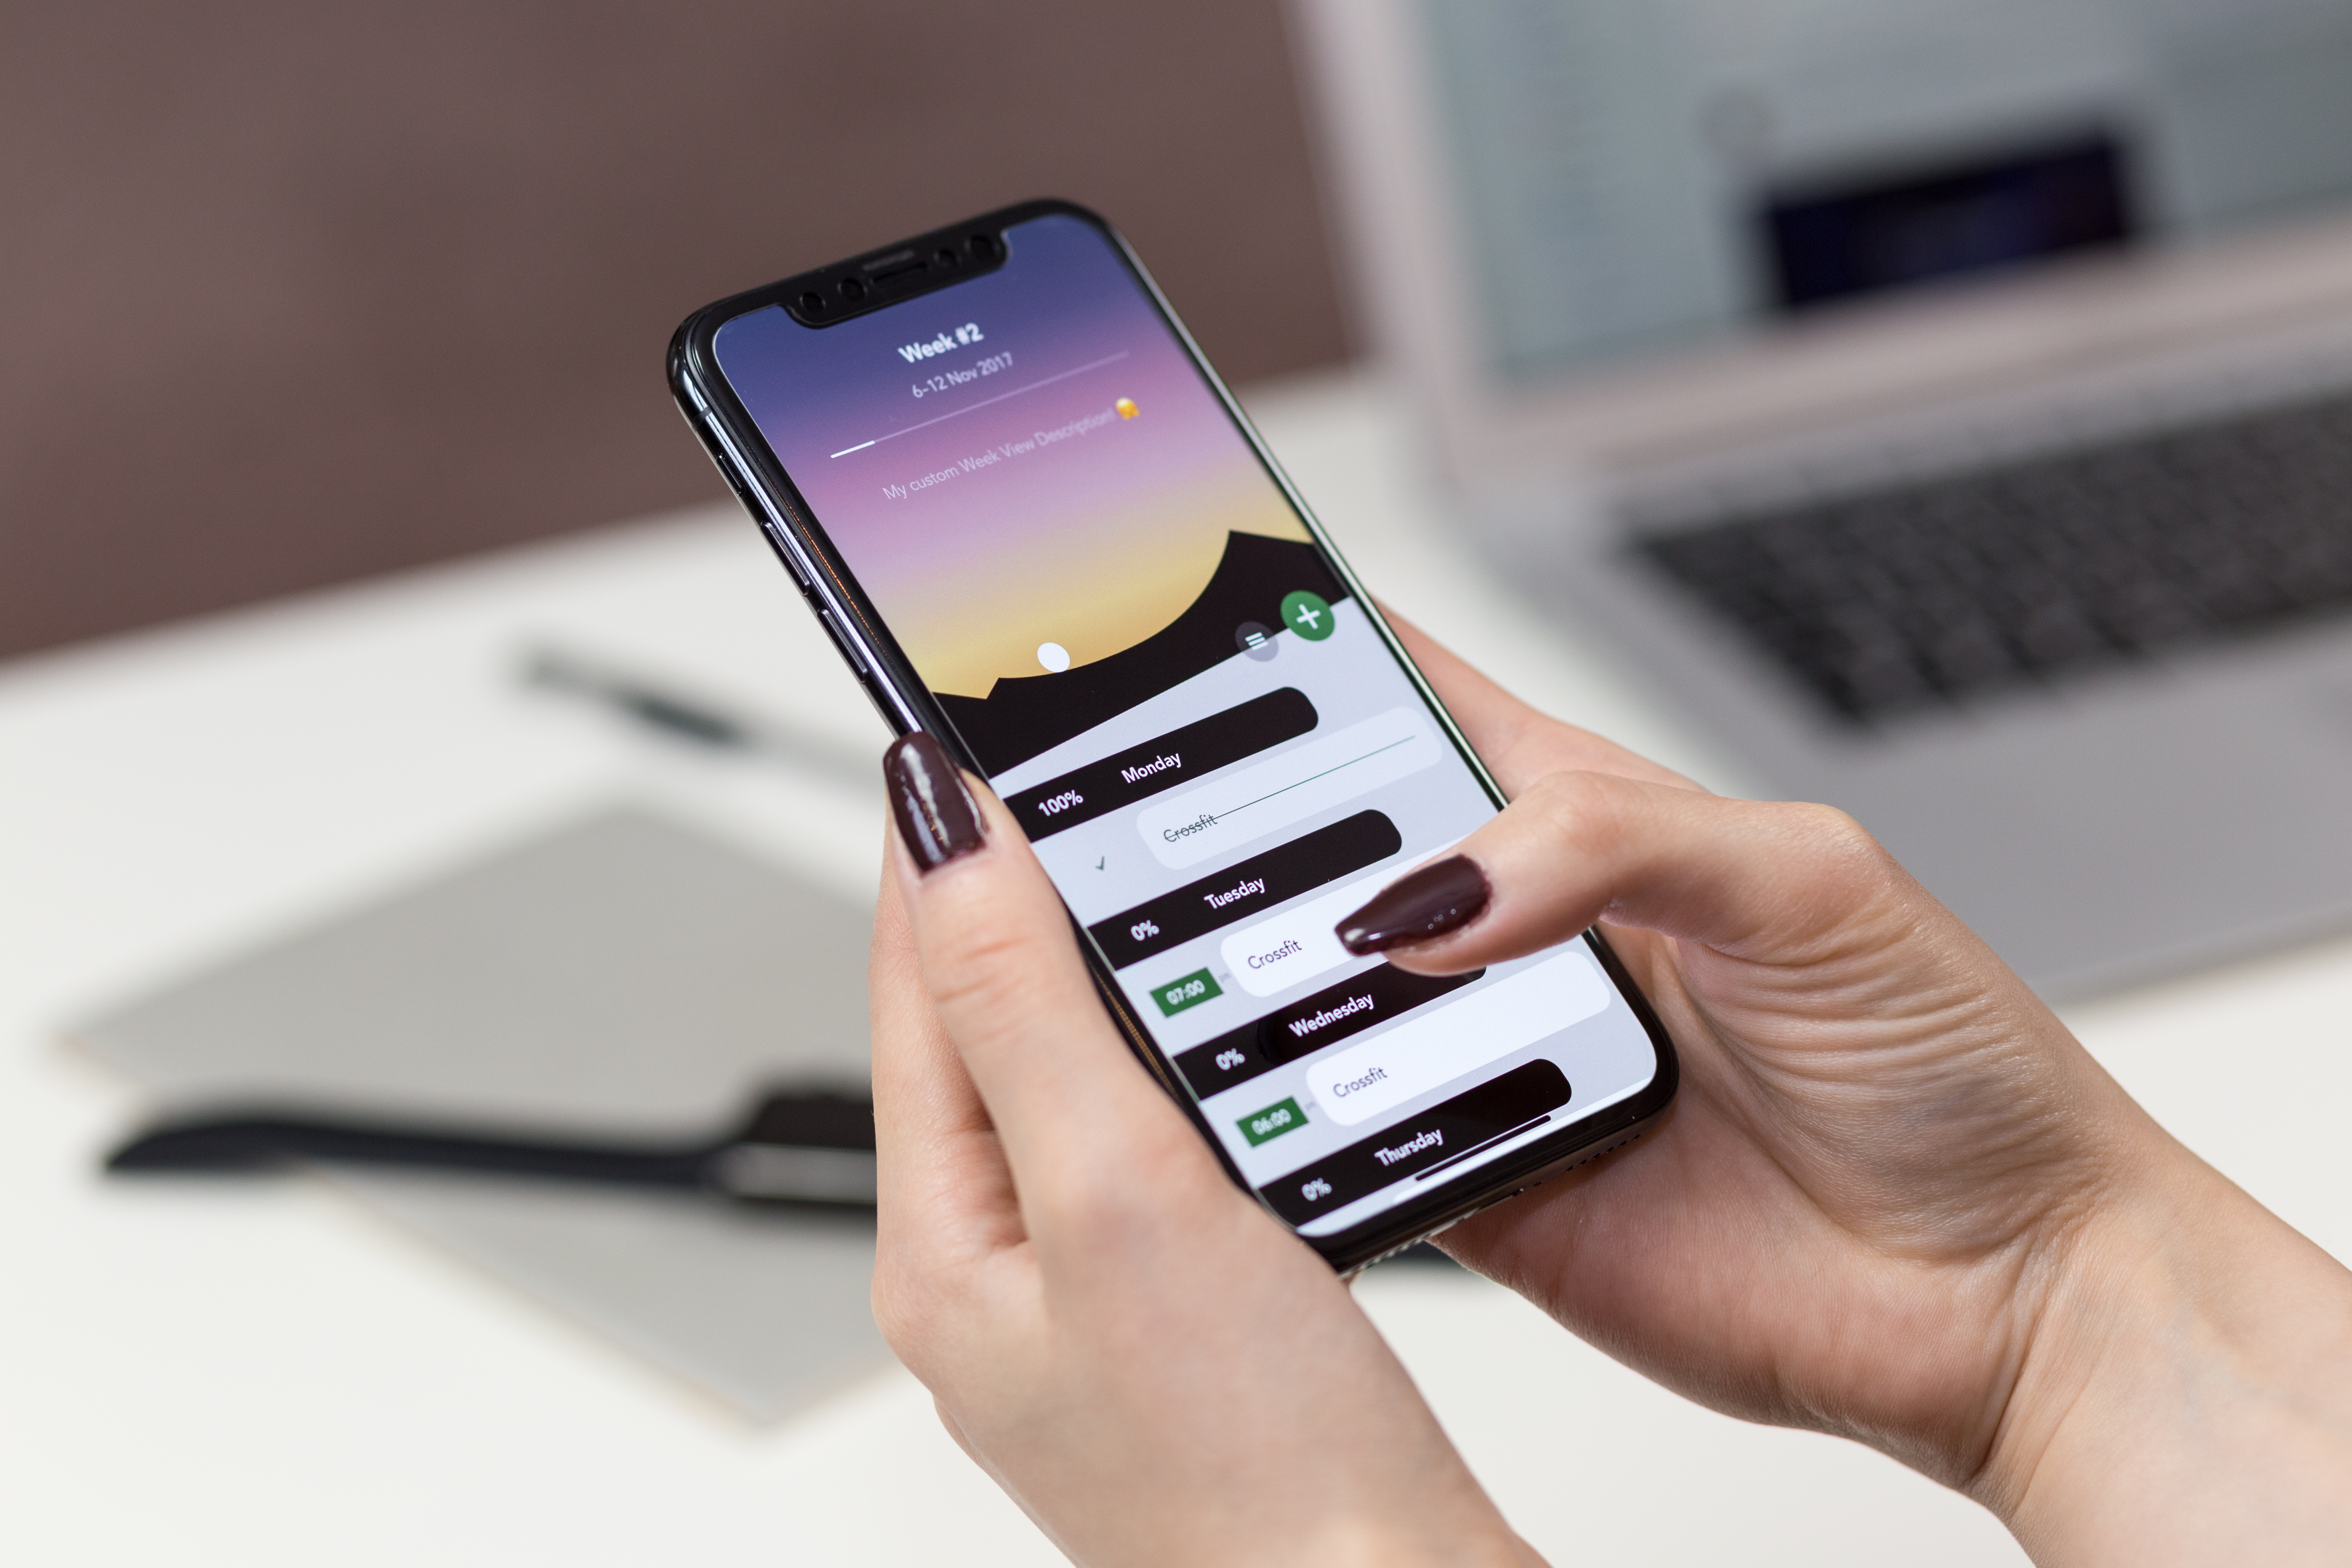 Birthday Background Wallpaper Hd Person Holding Silver Iphone X Turned On 183 Free Stock Photo